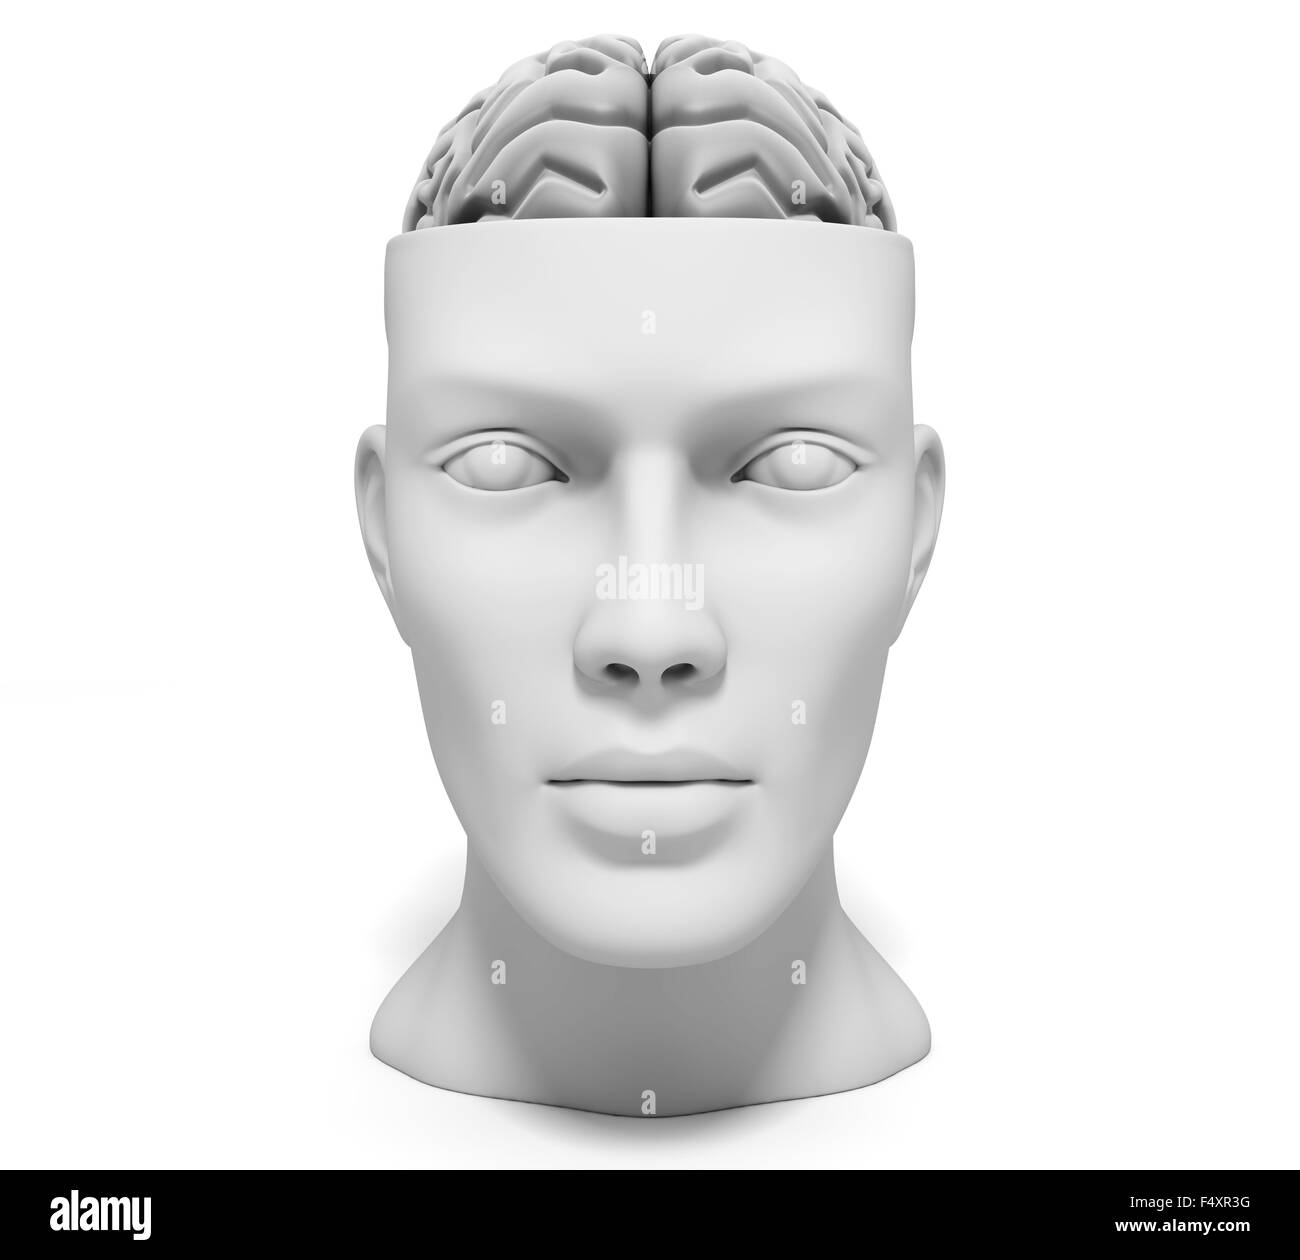 Human head with brain - Stock Image